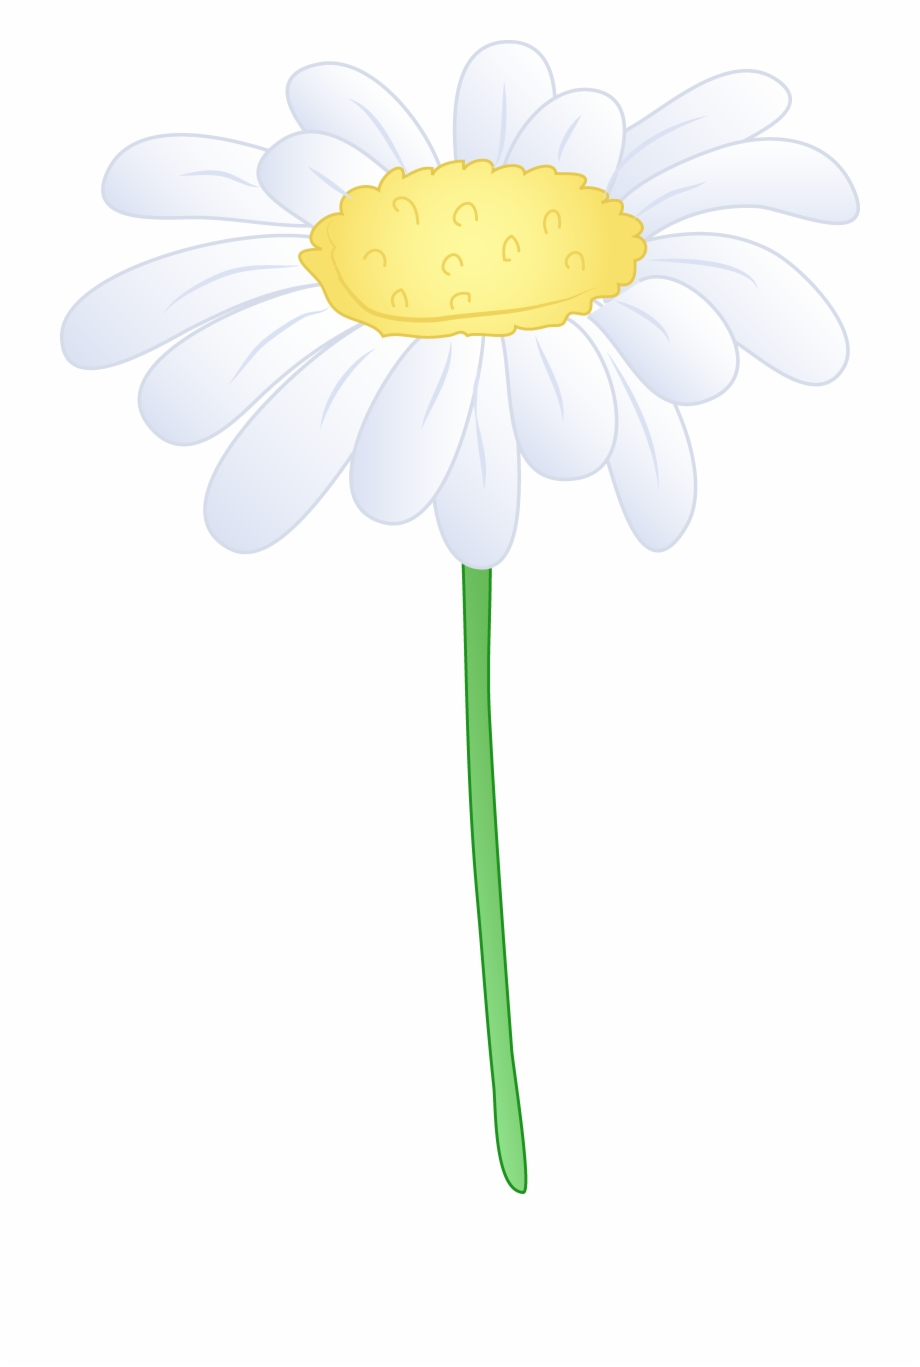 White daisy flower clipart picture royalty free stock Single White Daisy Flower Hd Photo Clipart - White Daisy ... picture royalty free stock